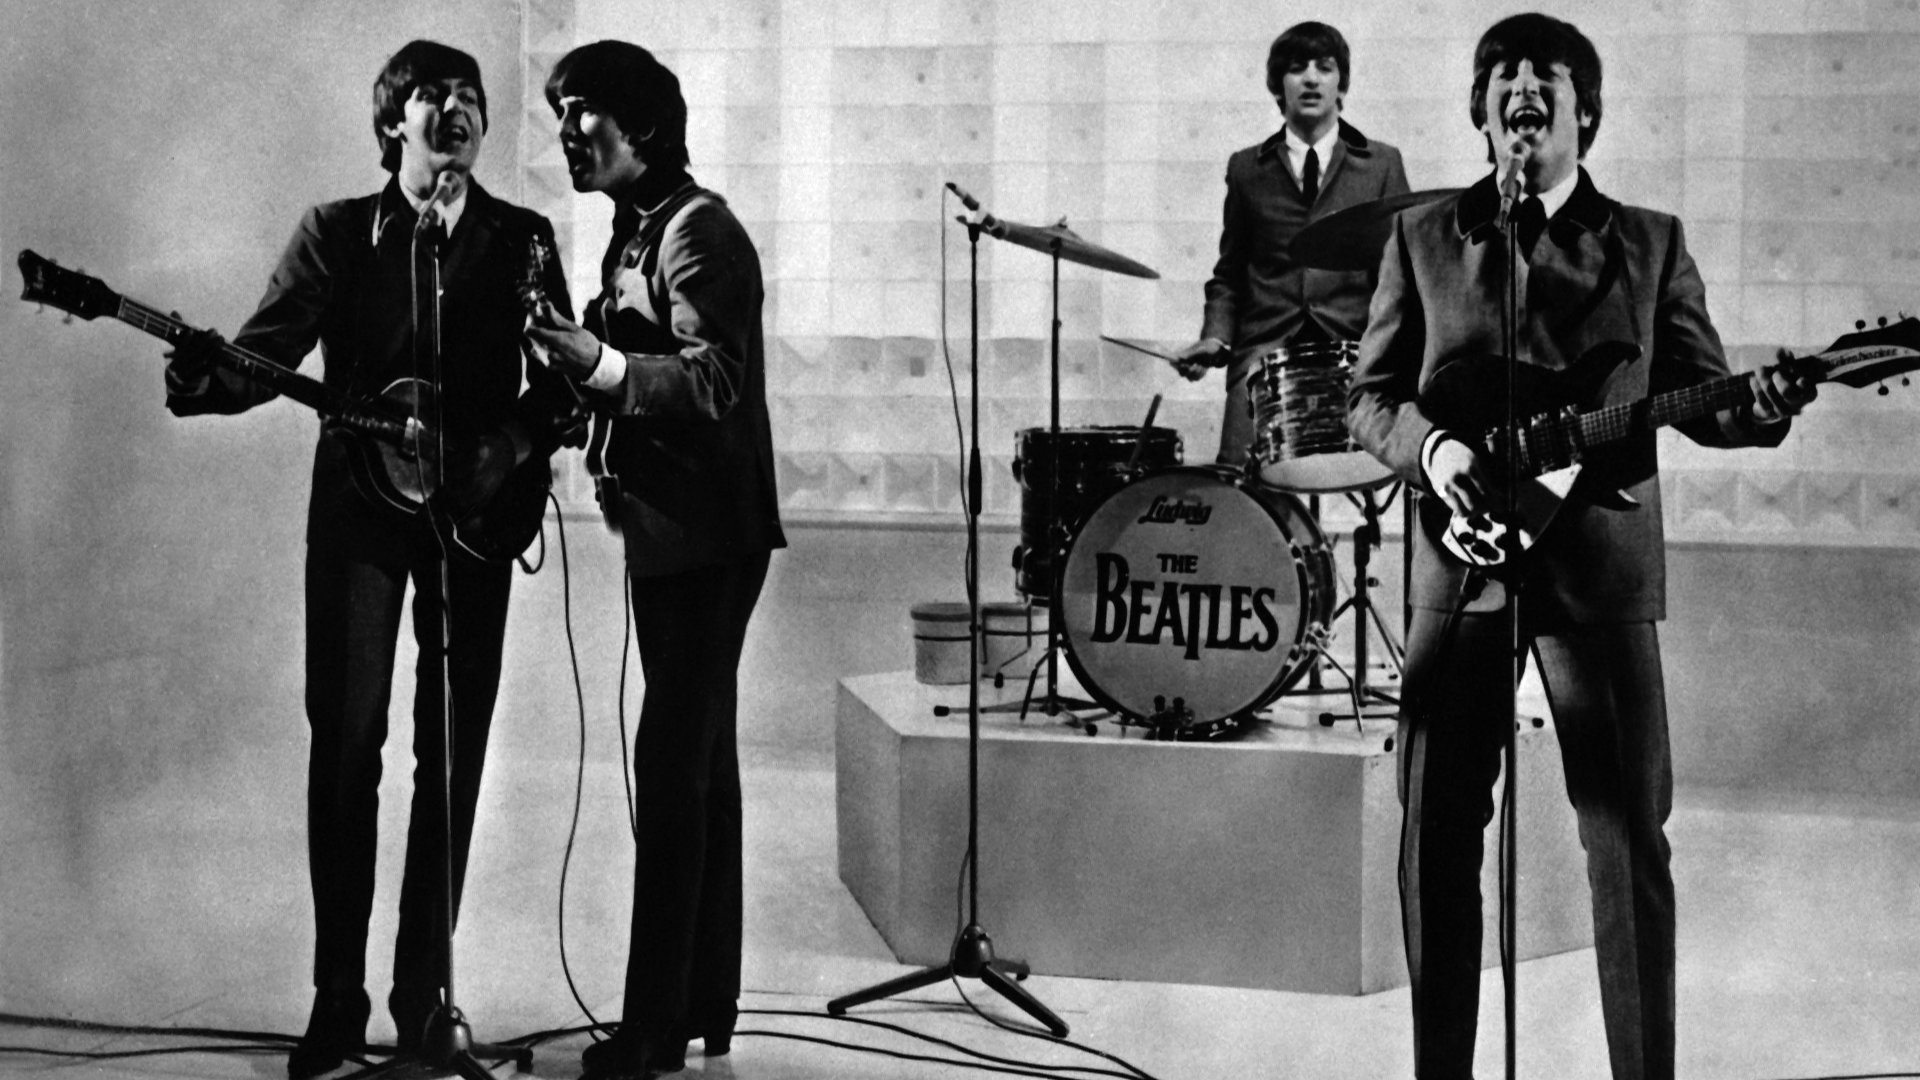 The Beatles, BBC Four